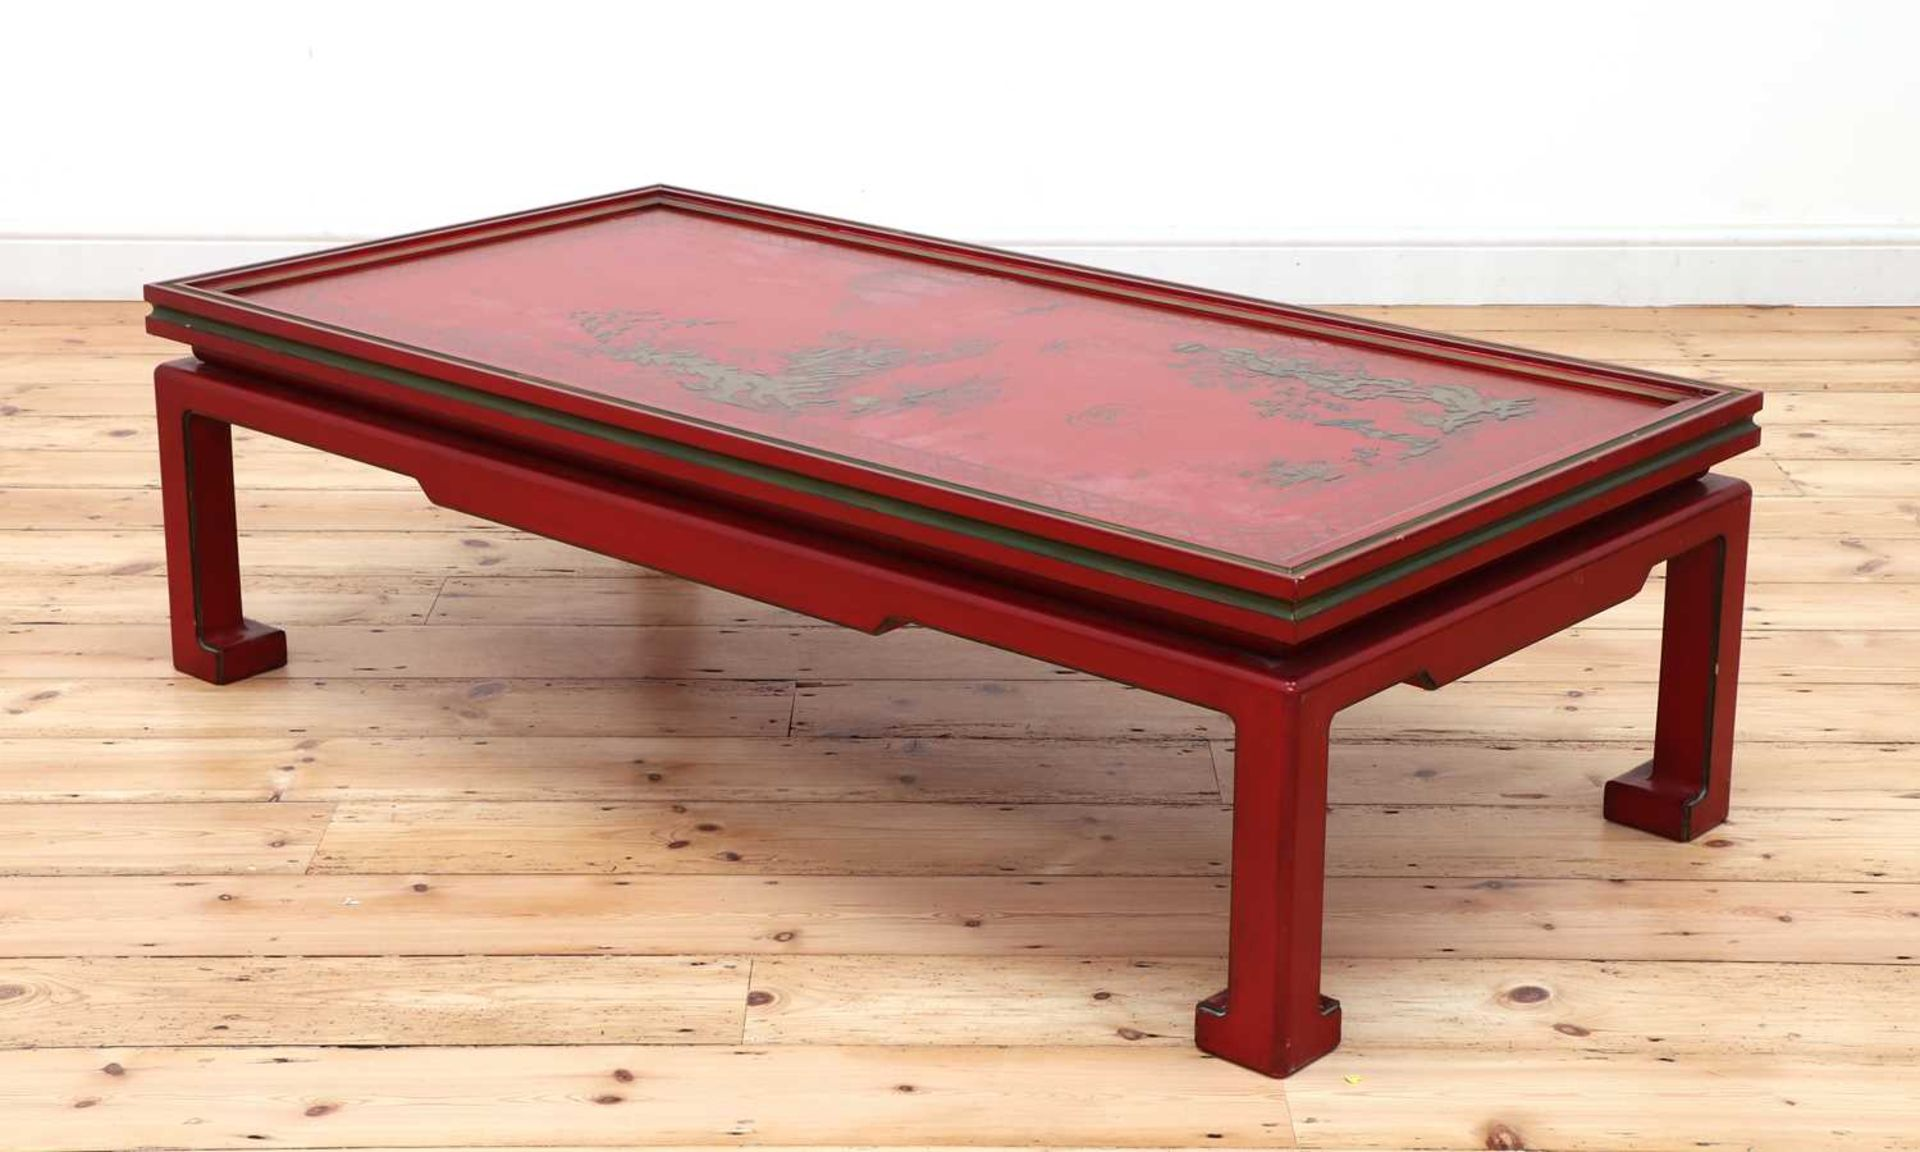 A Chinese-style red-lacquered coffee table in the manner of Mallett & Sons, - Image 3 of 9